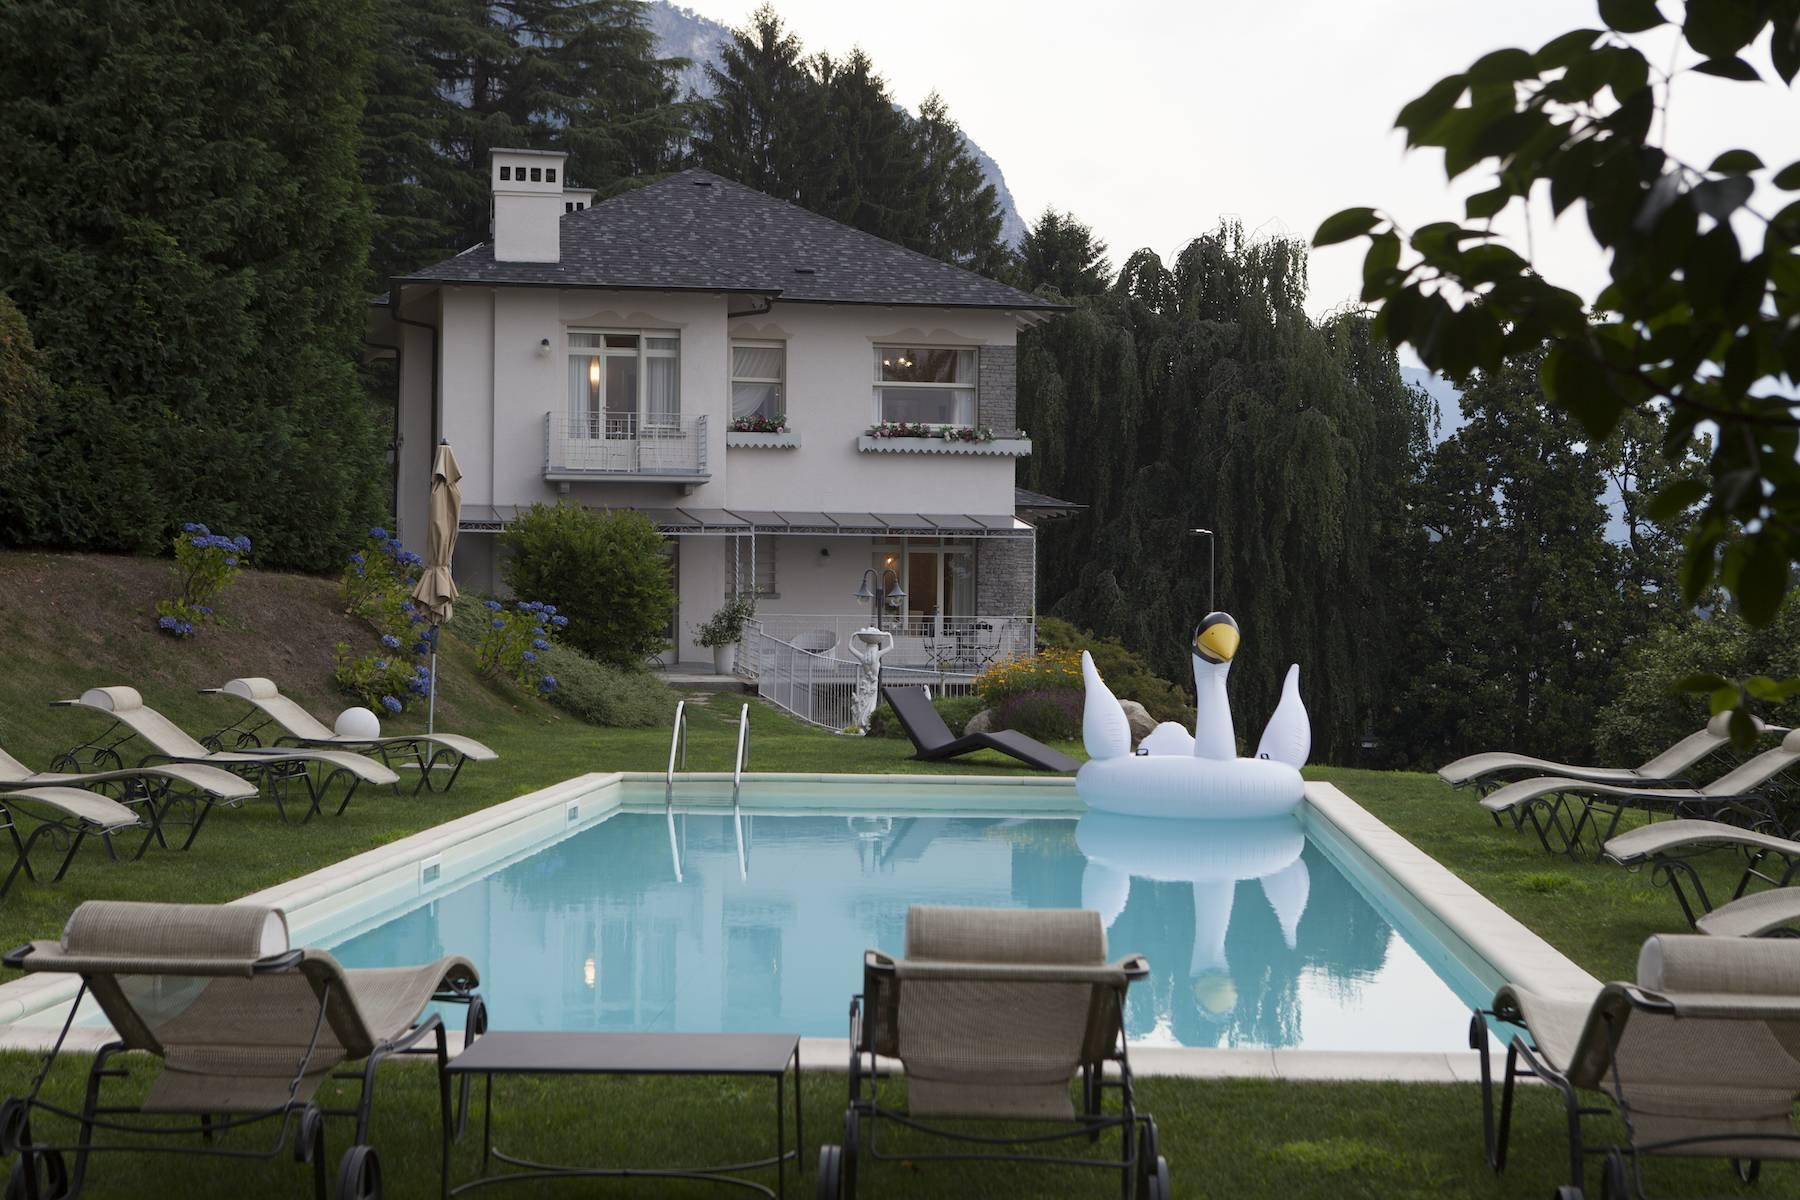 Enchanting Villa with breathtaking view on Lake Maggiore - 2